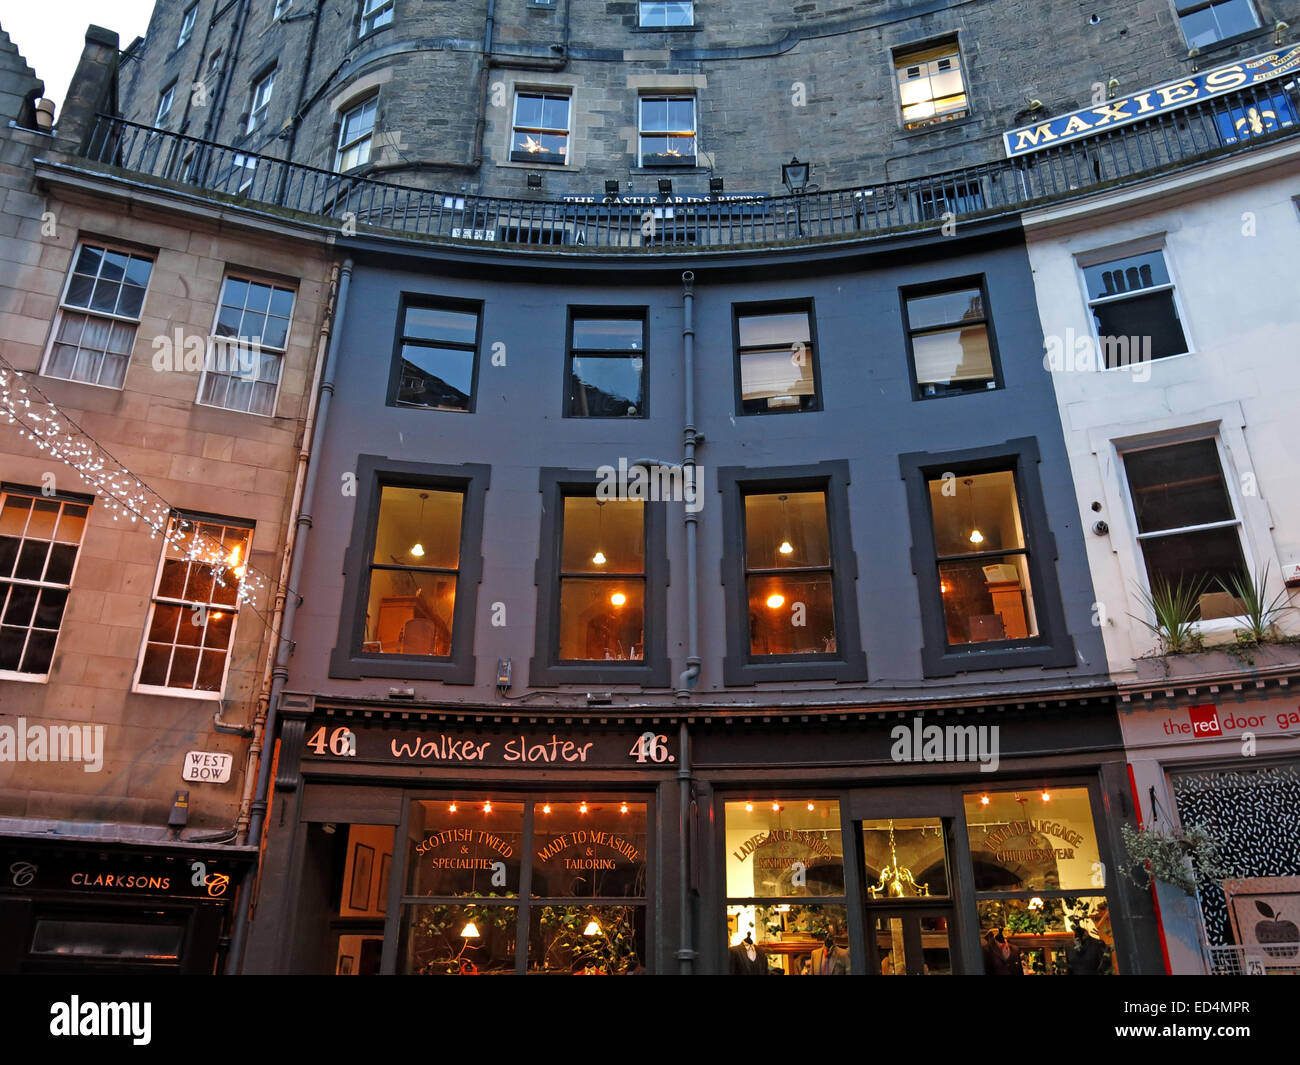 Street,Scottish,building,Street,with,historic,architecture,elegant,curve,colourful,shop,fronts,is,one,of,the,city's,most,picturesque,location,old,West,Bow,Grassmarket,to,Castlehill,Lothian,Scotland,UK,Edinburgh,tourist,trail,track,tourism,night,dusk,xmas,christmas,gotonysmith buildings tourists history,Buy Pictures of,Buy Images Of